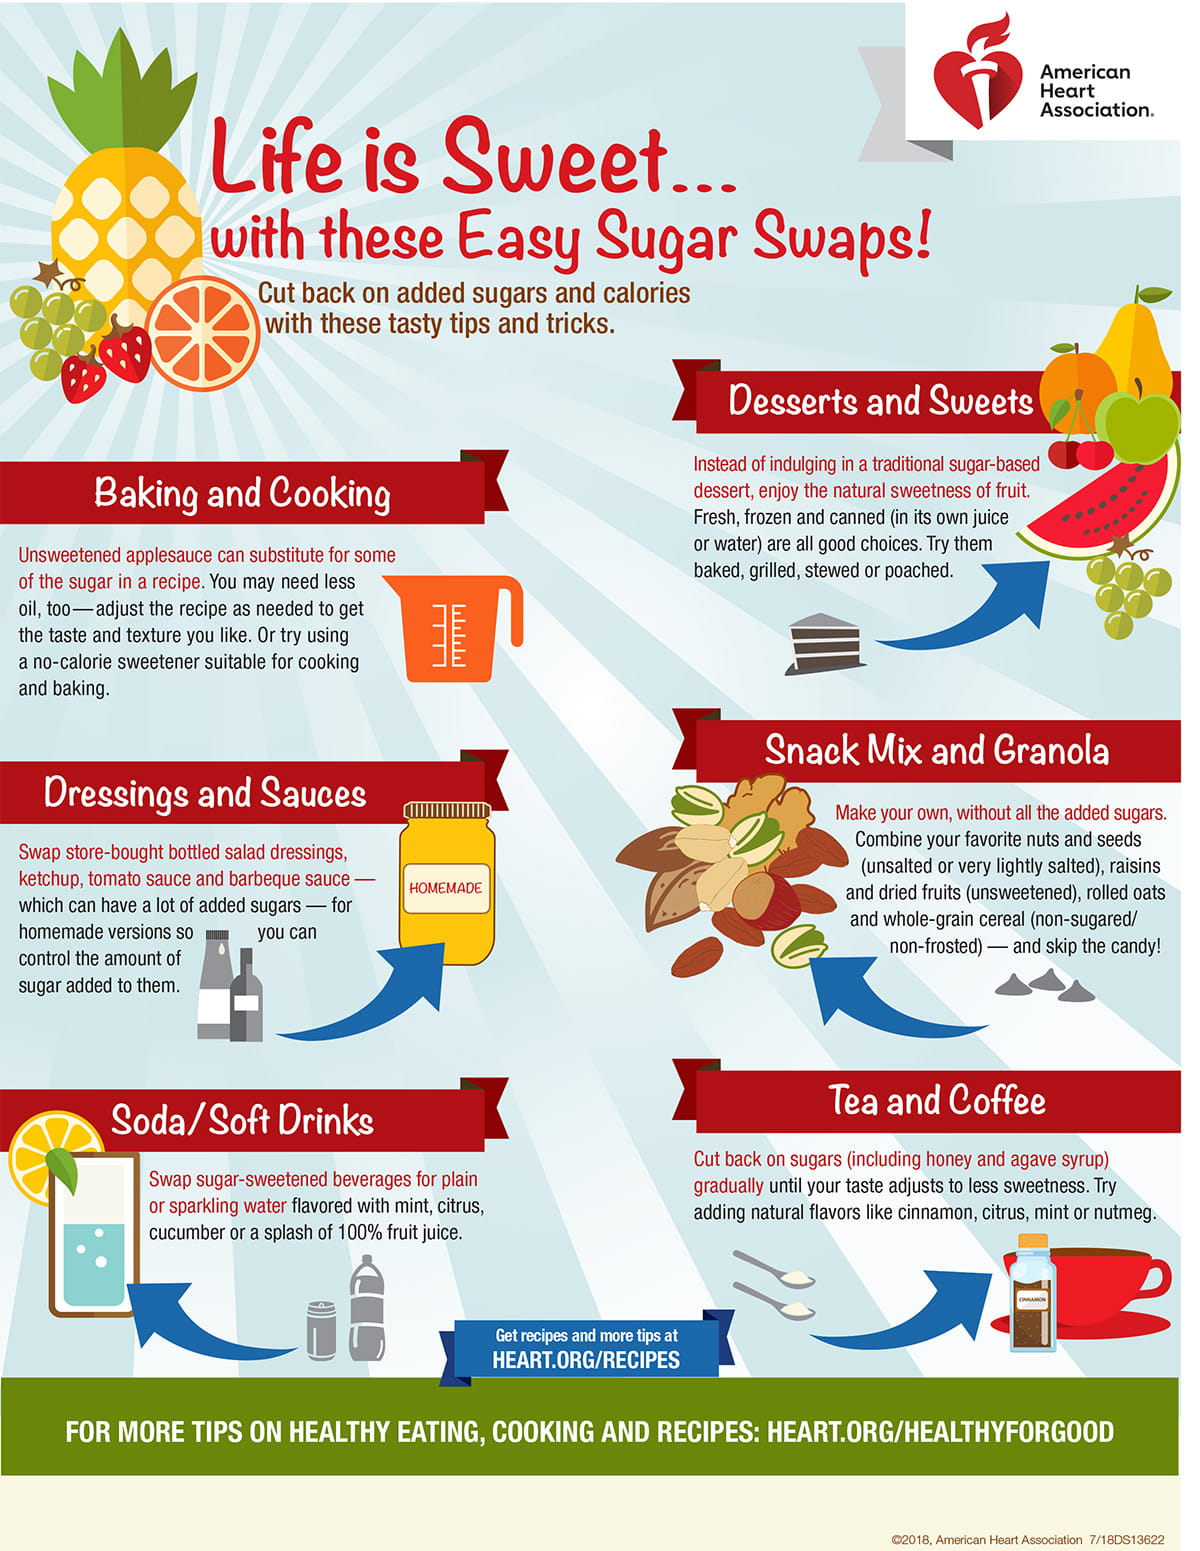 Life is Sweet Infographic